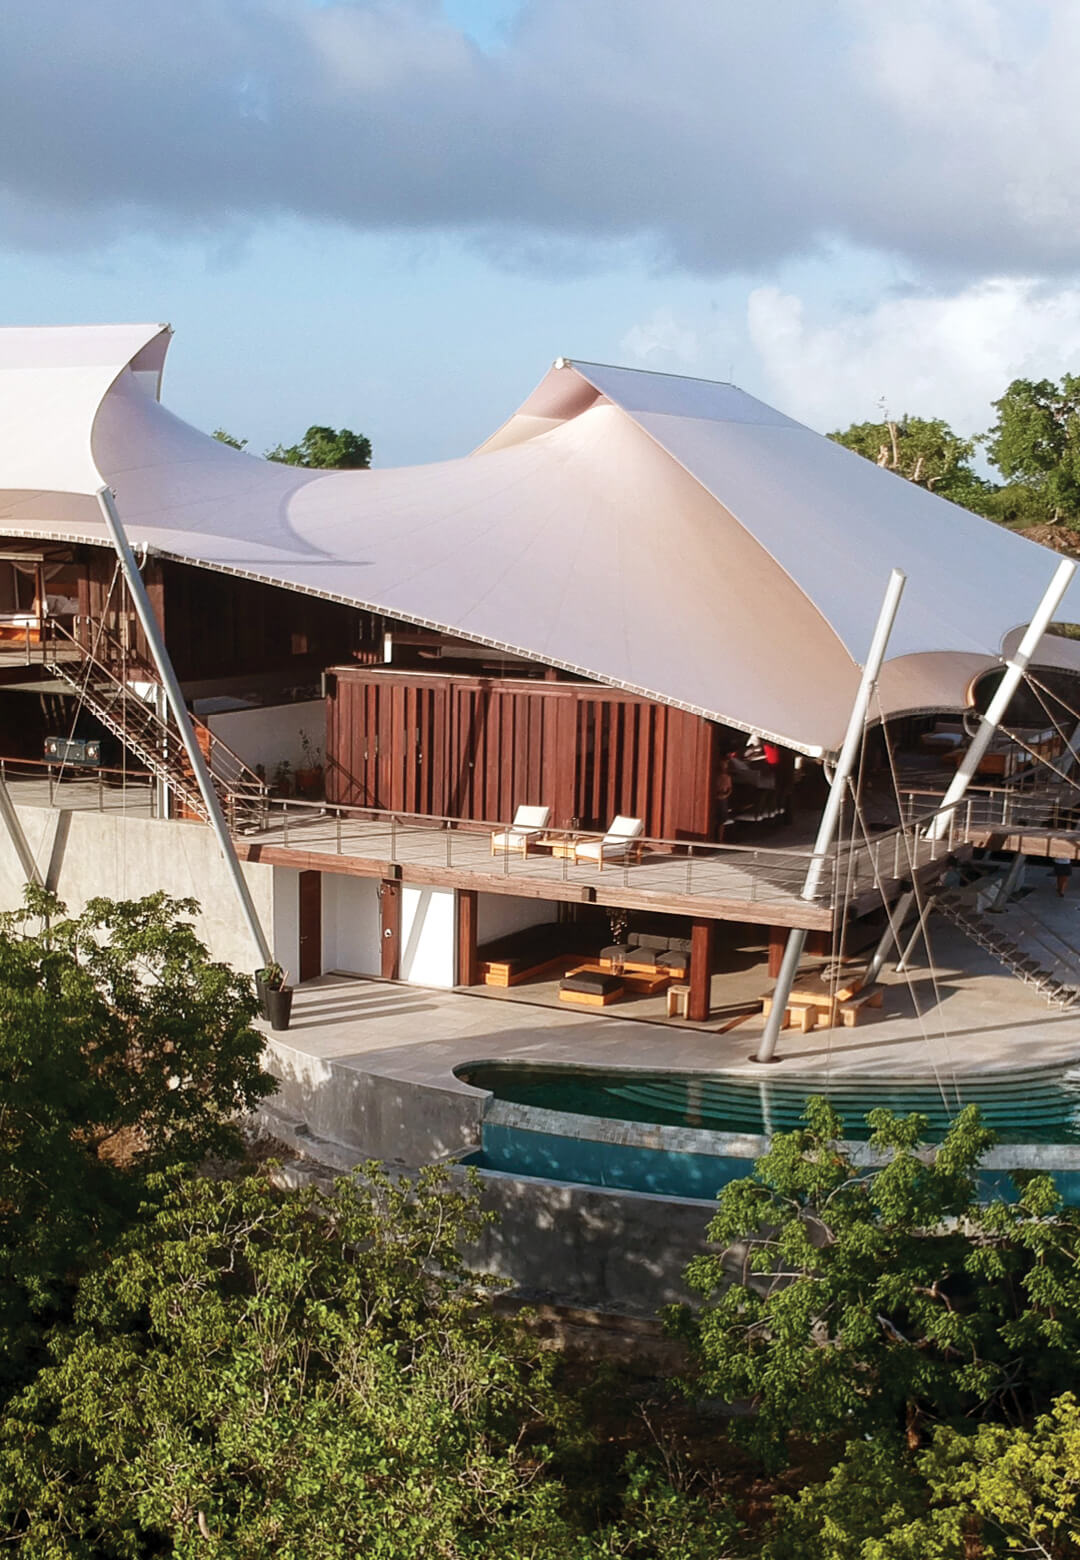 Sail House by David Hertz Architects conjures up the image of billowing sails on ships   Sail House by David Hertz Architects, Studio of Environmental Architecture   Saint Vincent and the Grenadines   STIRworld